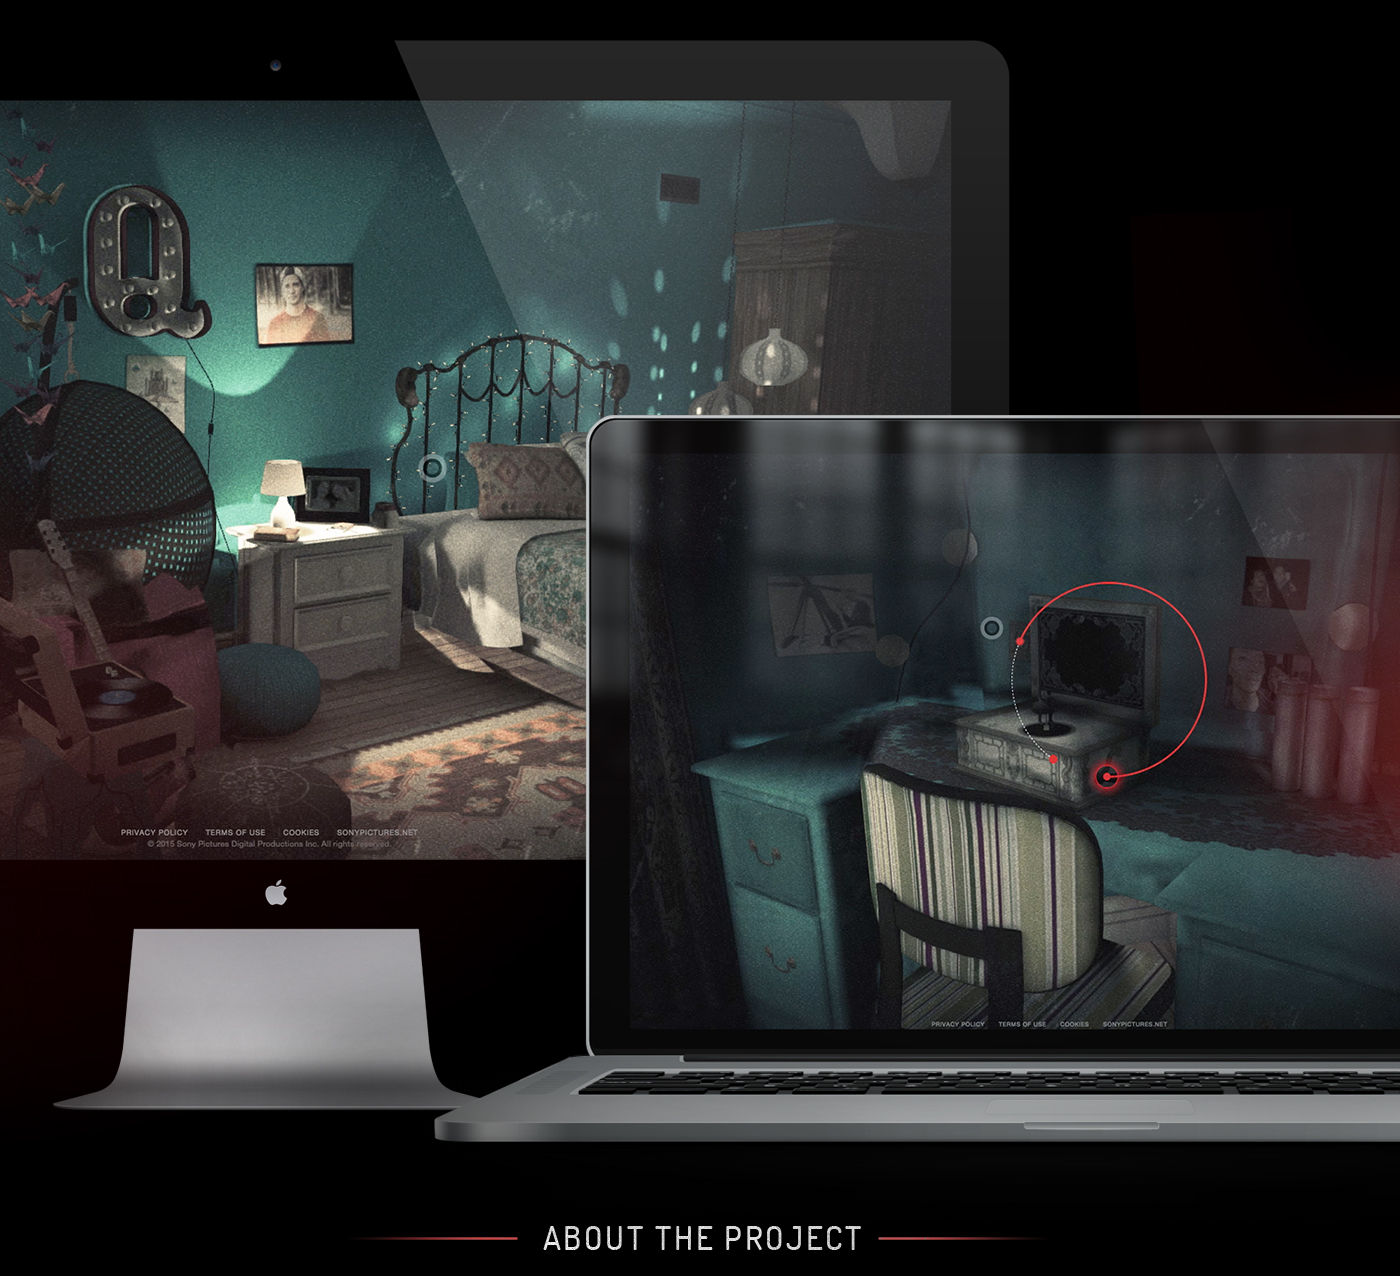 Insidious Chapter III: The Room Experience on Behance